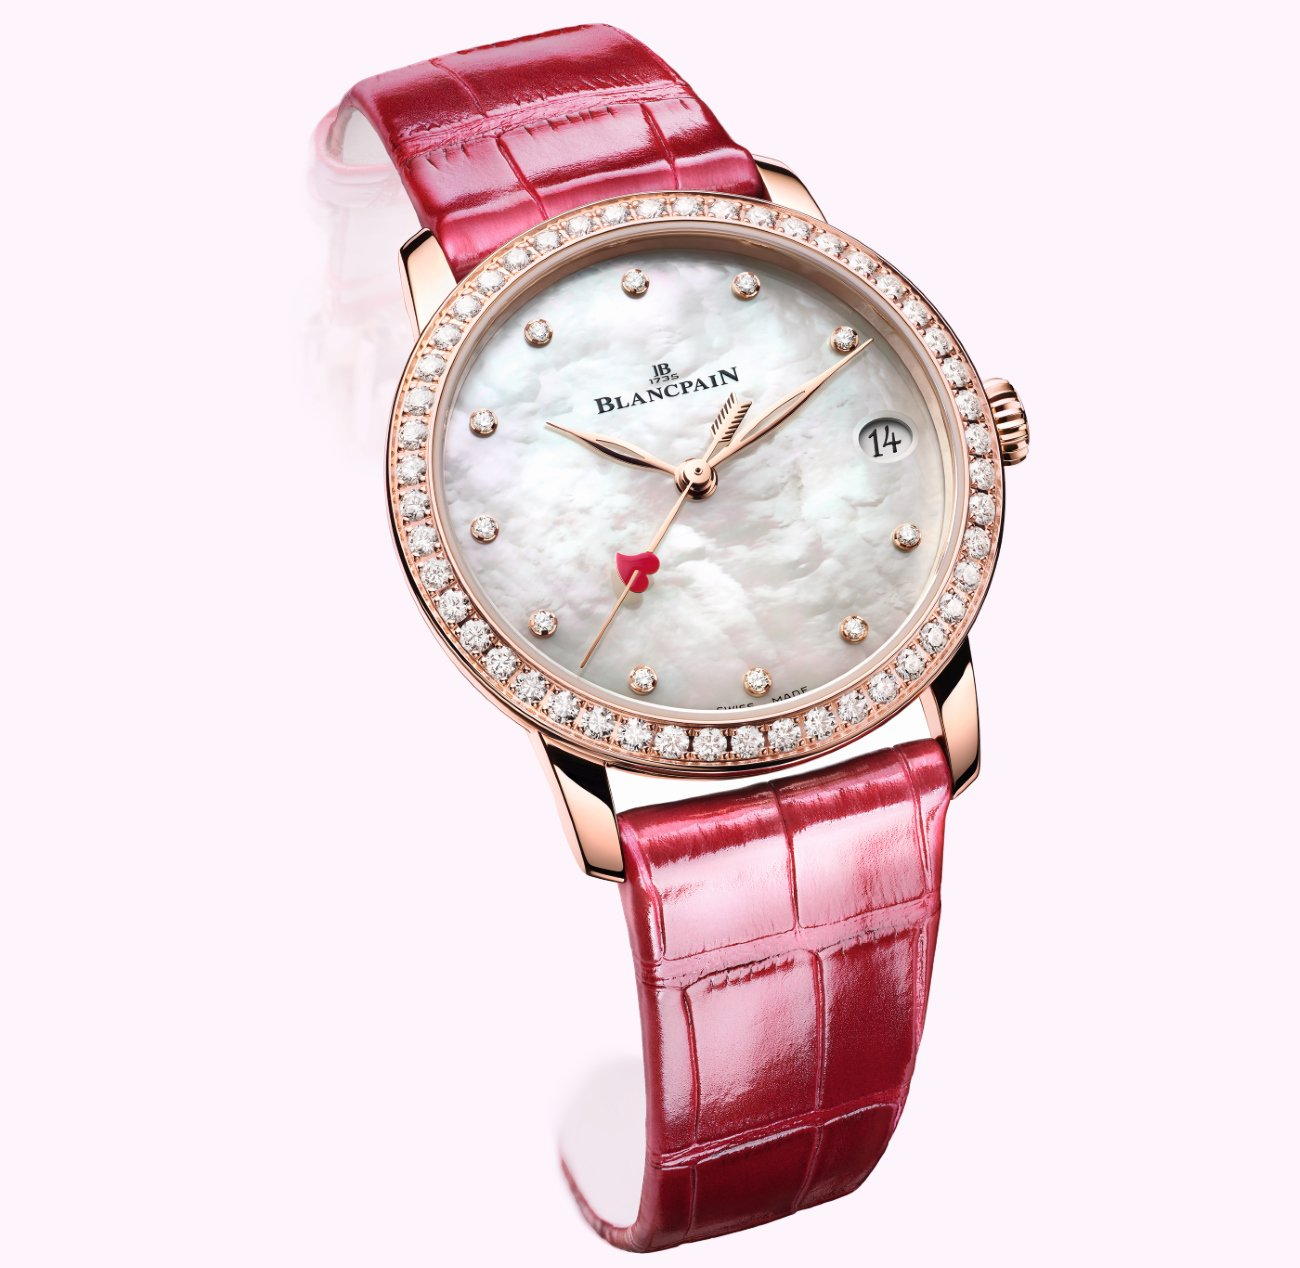 blancpain_valentine_day_2021_side_-_europa_star_magazine_2021-2